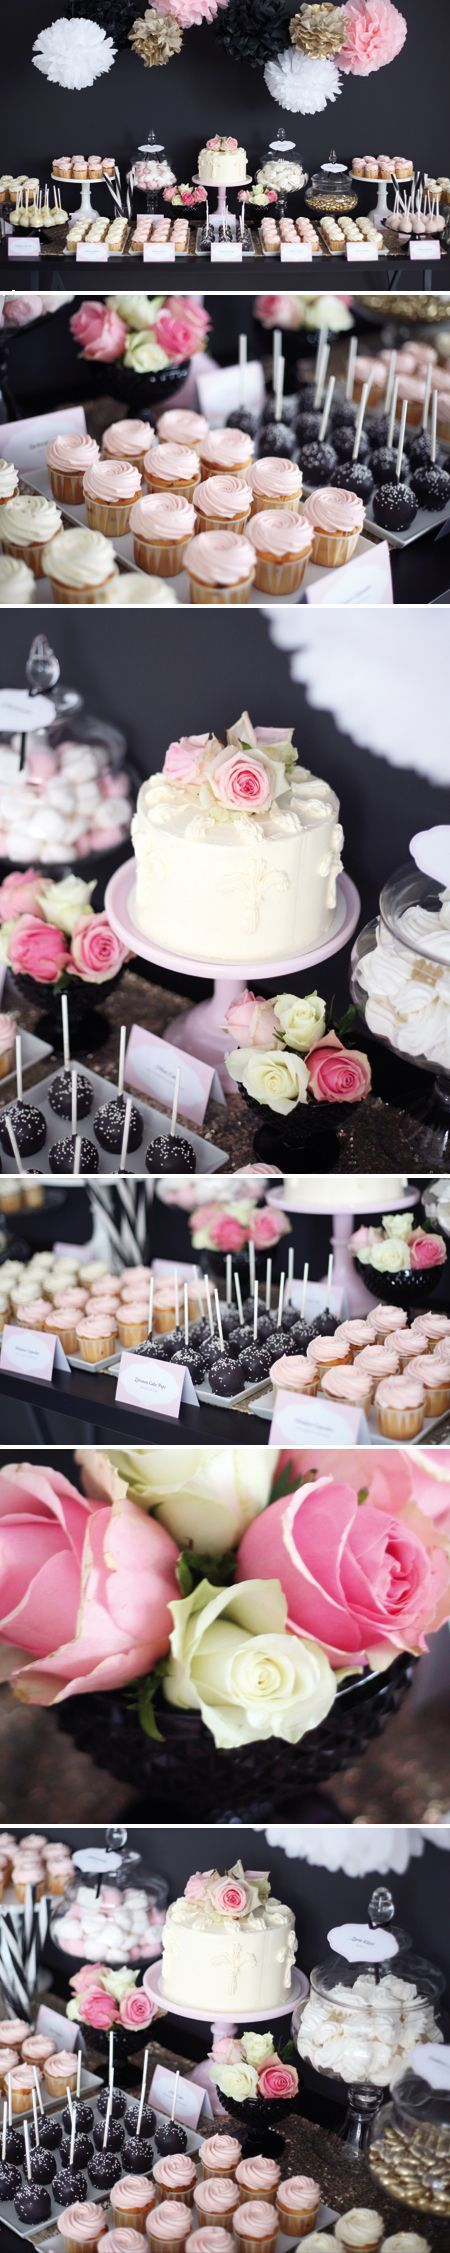 A dark rose dessert bar is super glam and, needless to say, delicious.